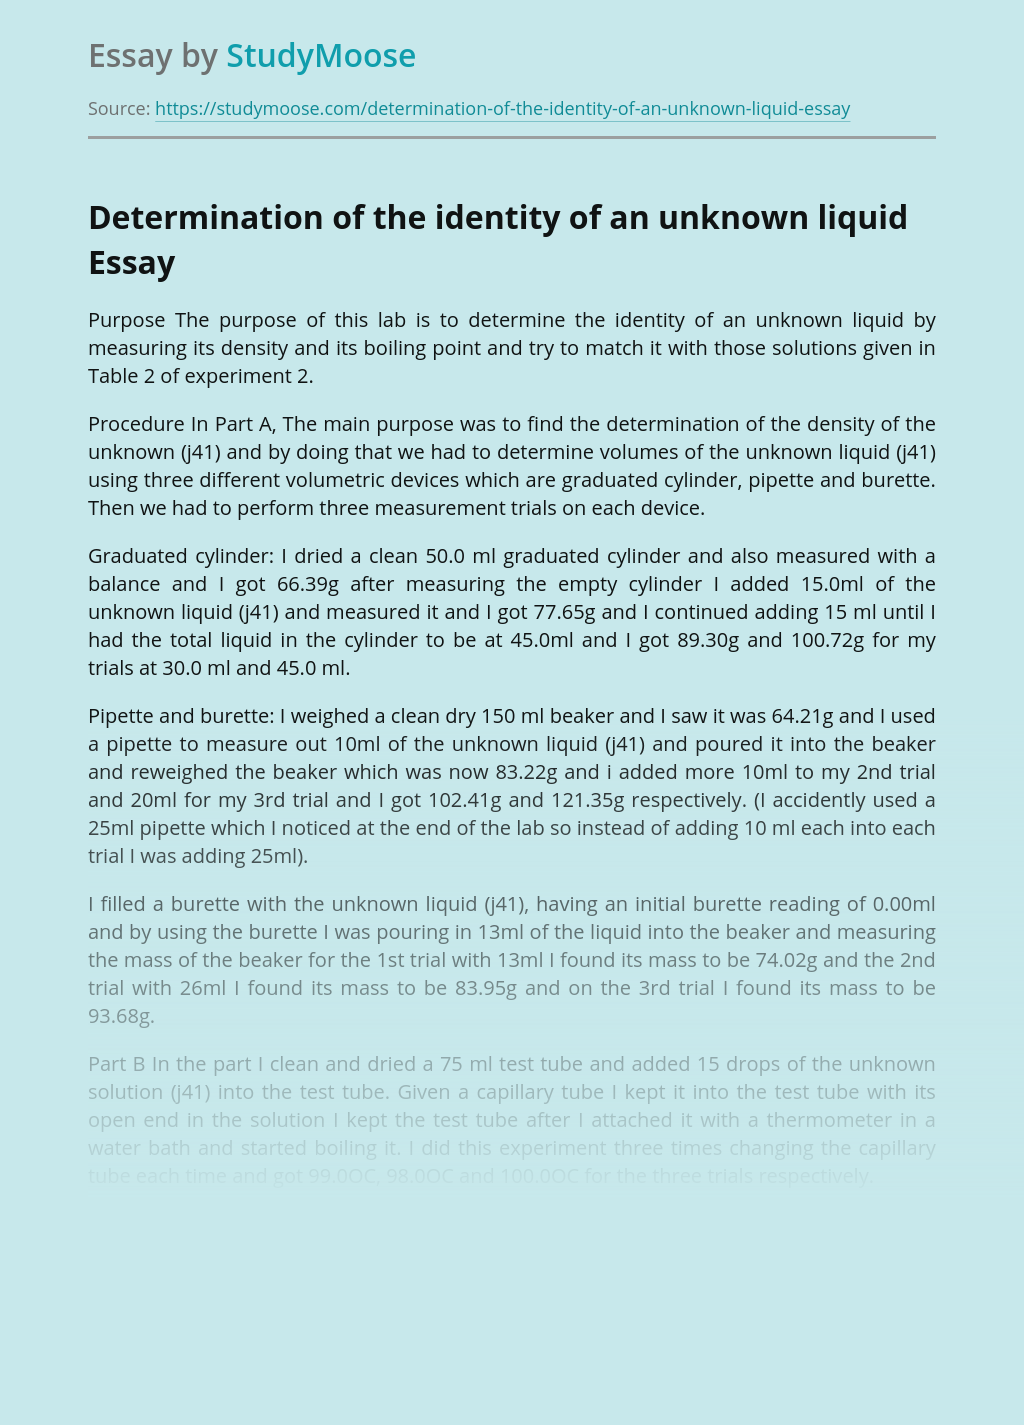 Determination of the identity of an unknown liquid